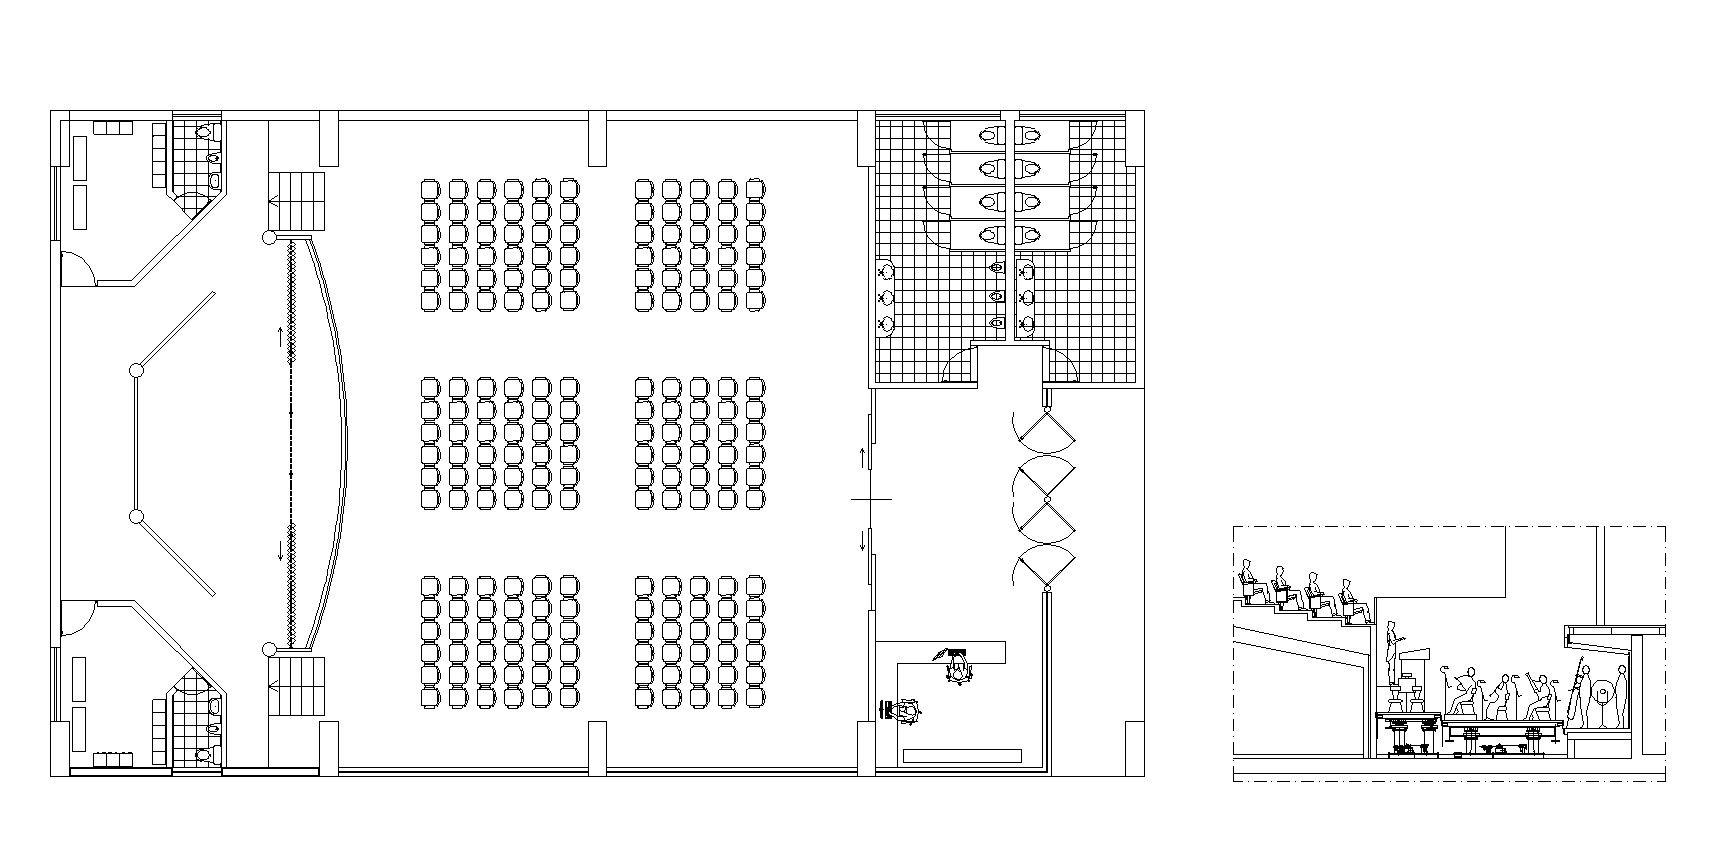 Free Theater Plan Cad Design